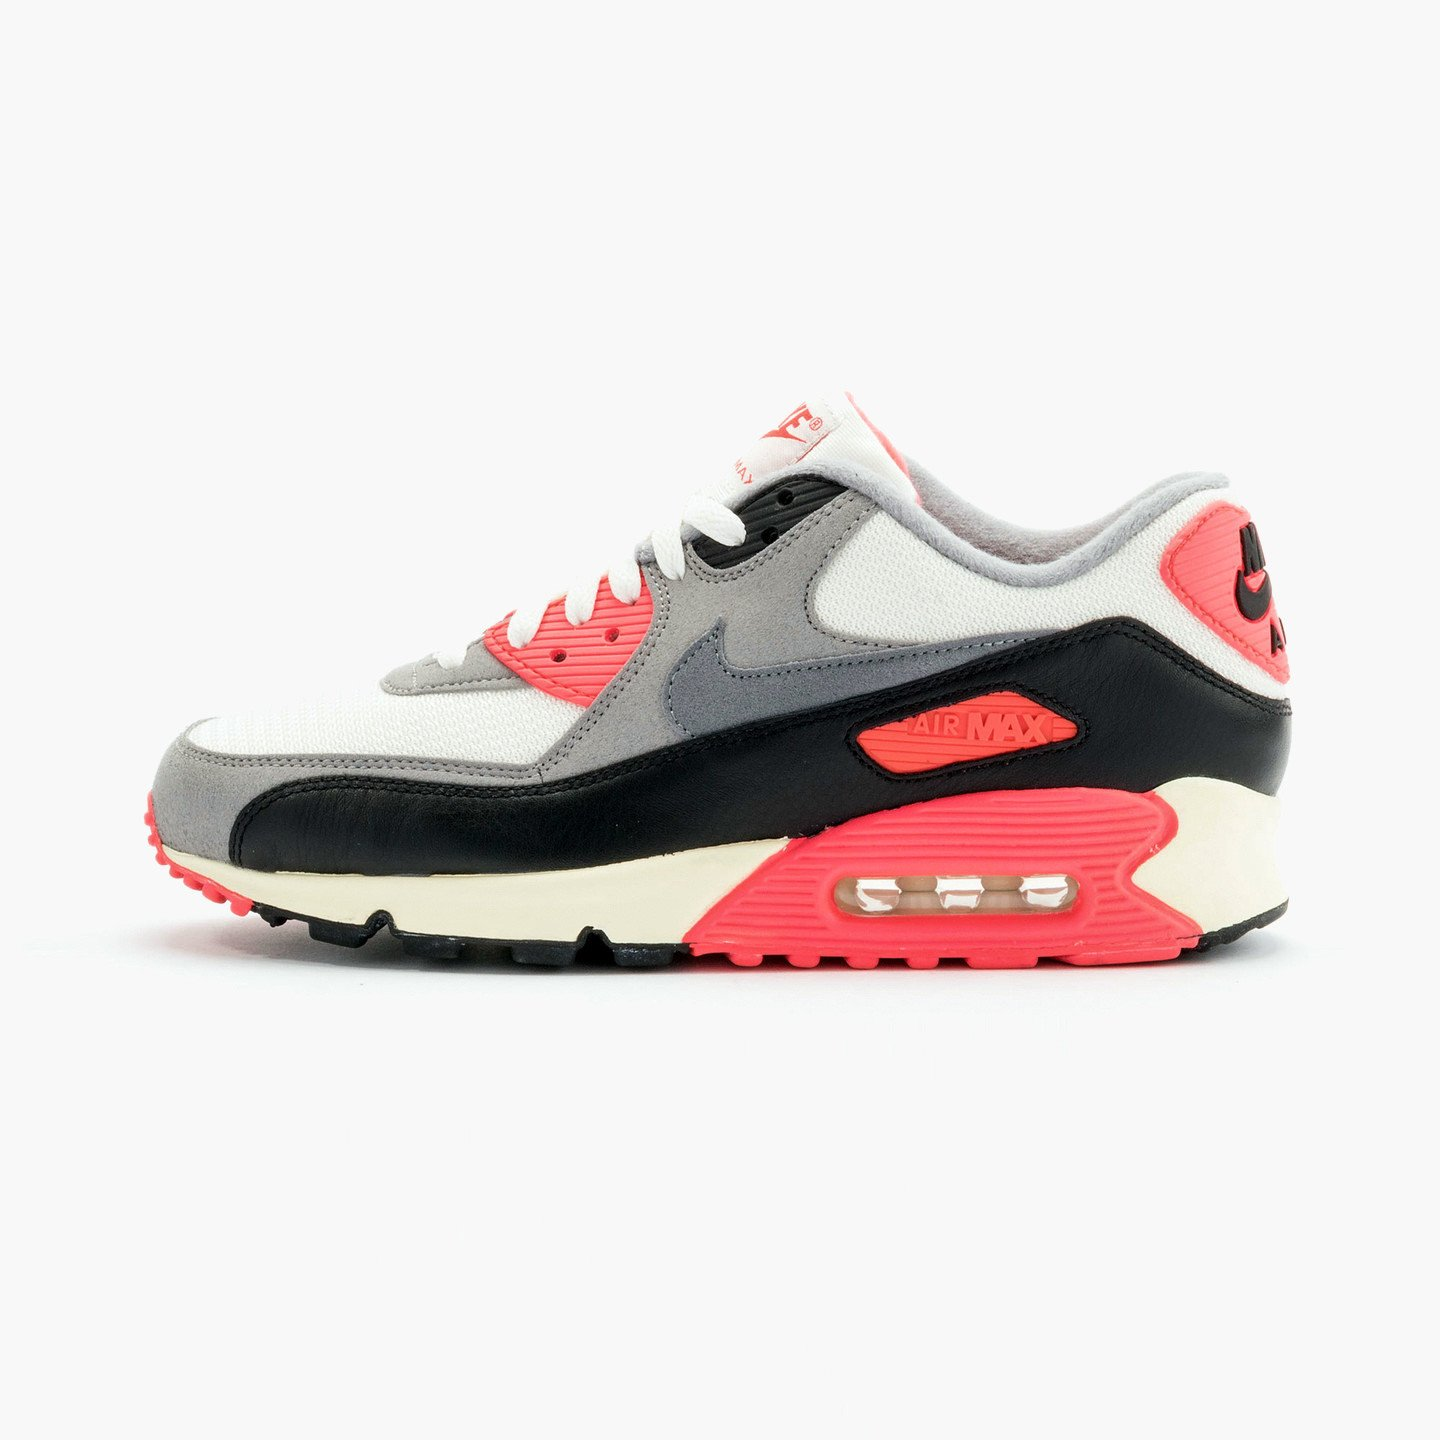 Nike Air Max 90 OG Vintage Infrared Sail/Cool Grey-Mdm Grey-Infrrd 543361-161-42